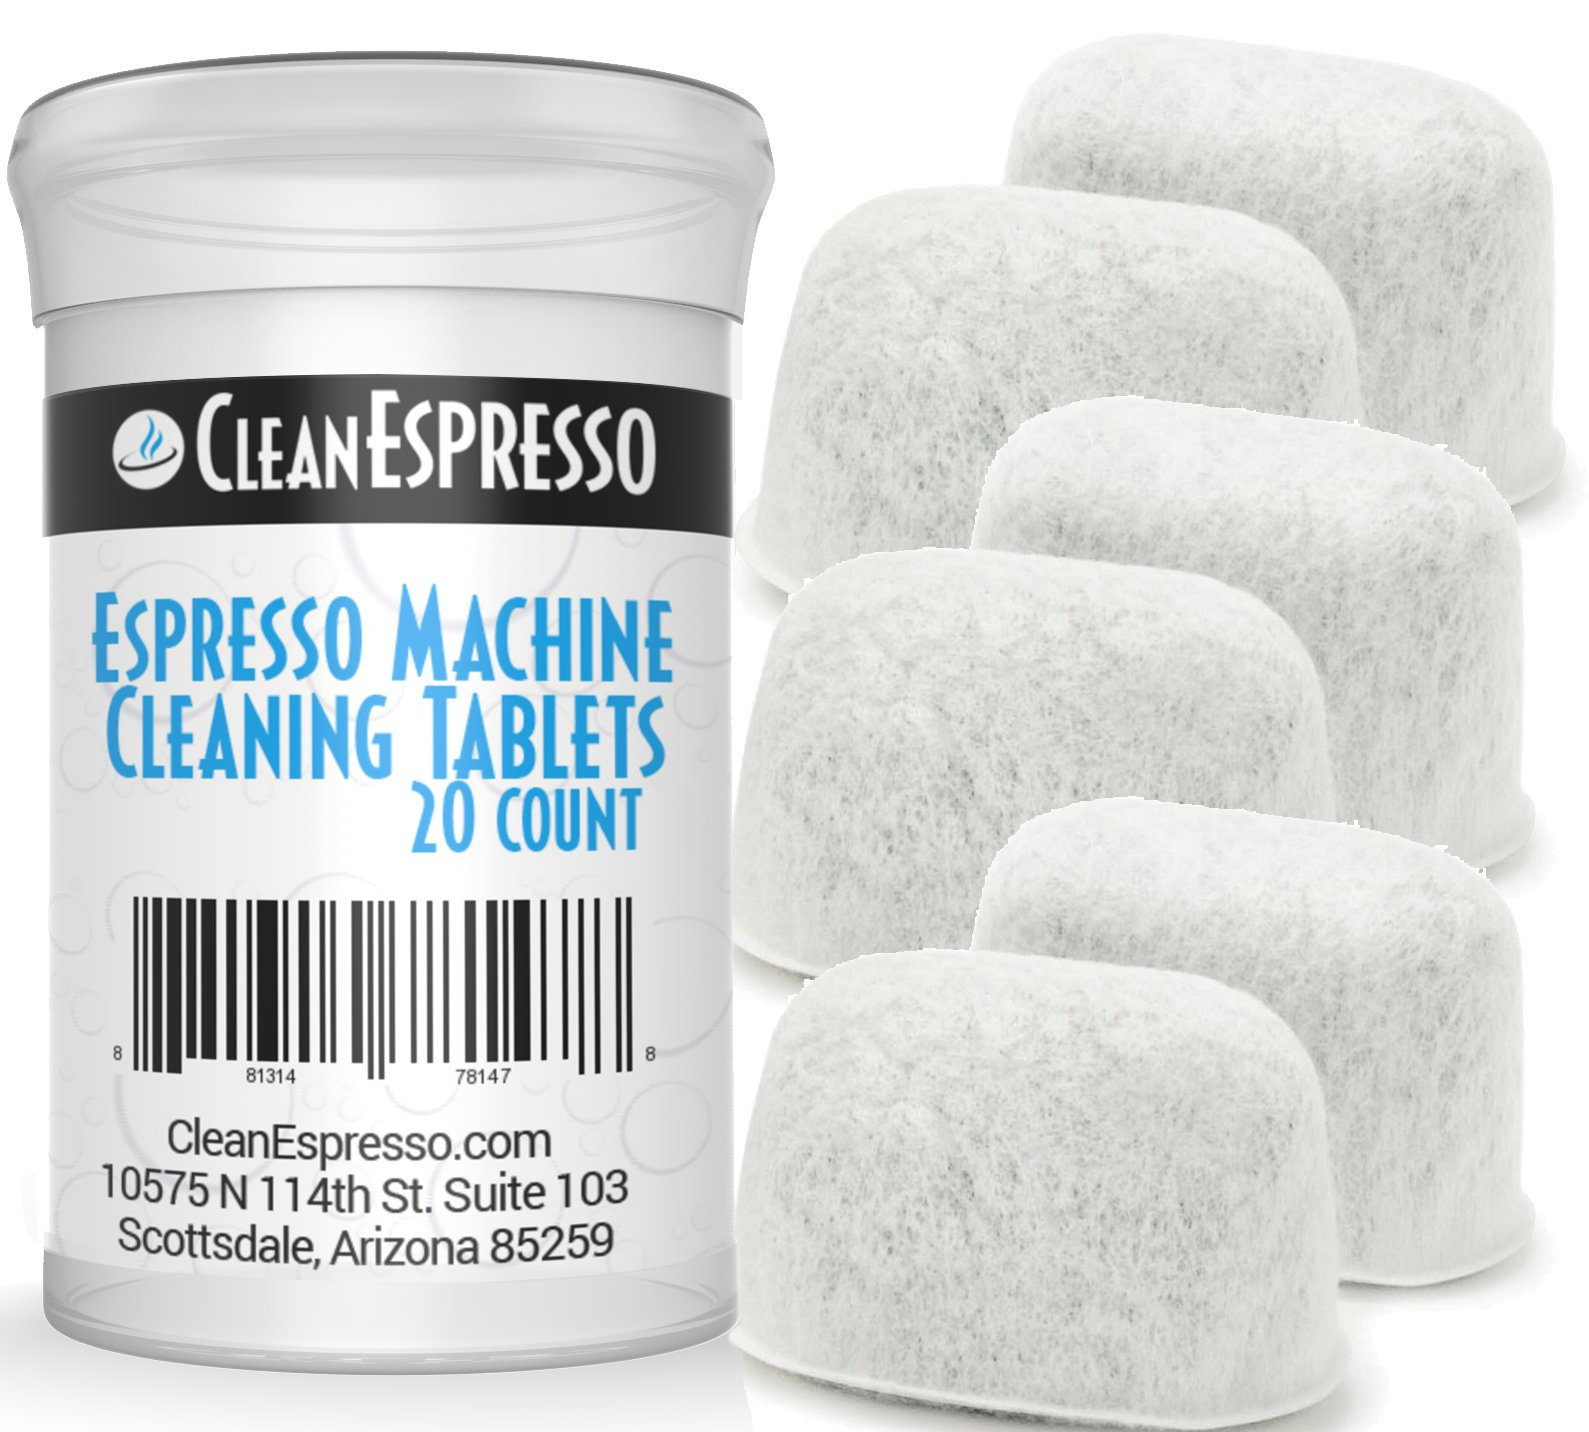 Espresso Machine Cleaning Tablets for Breville Machines + 6 Replacement Filters - Model BRF-020 - Espresso Machine Accessories by CleanEspresso